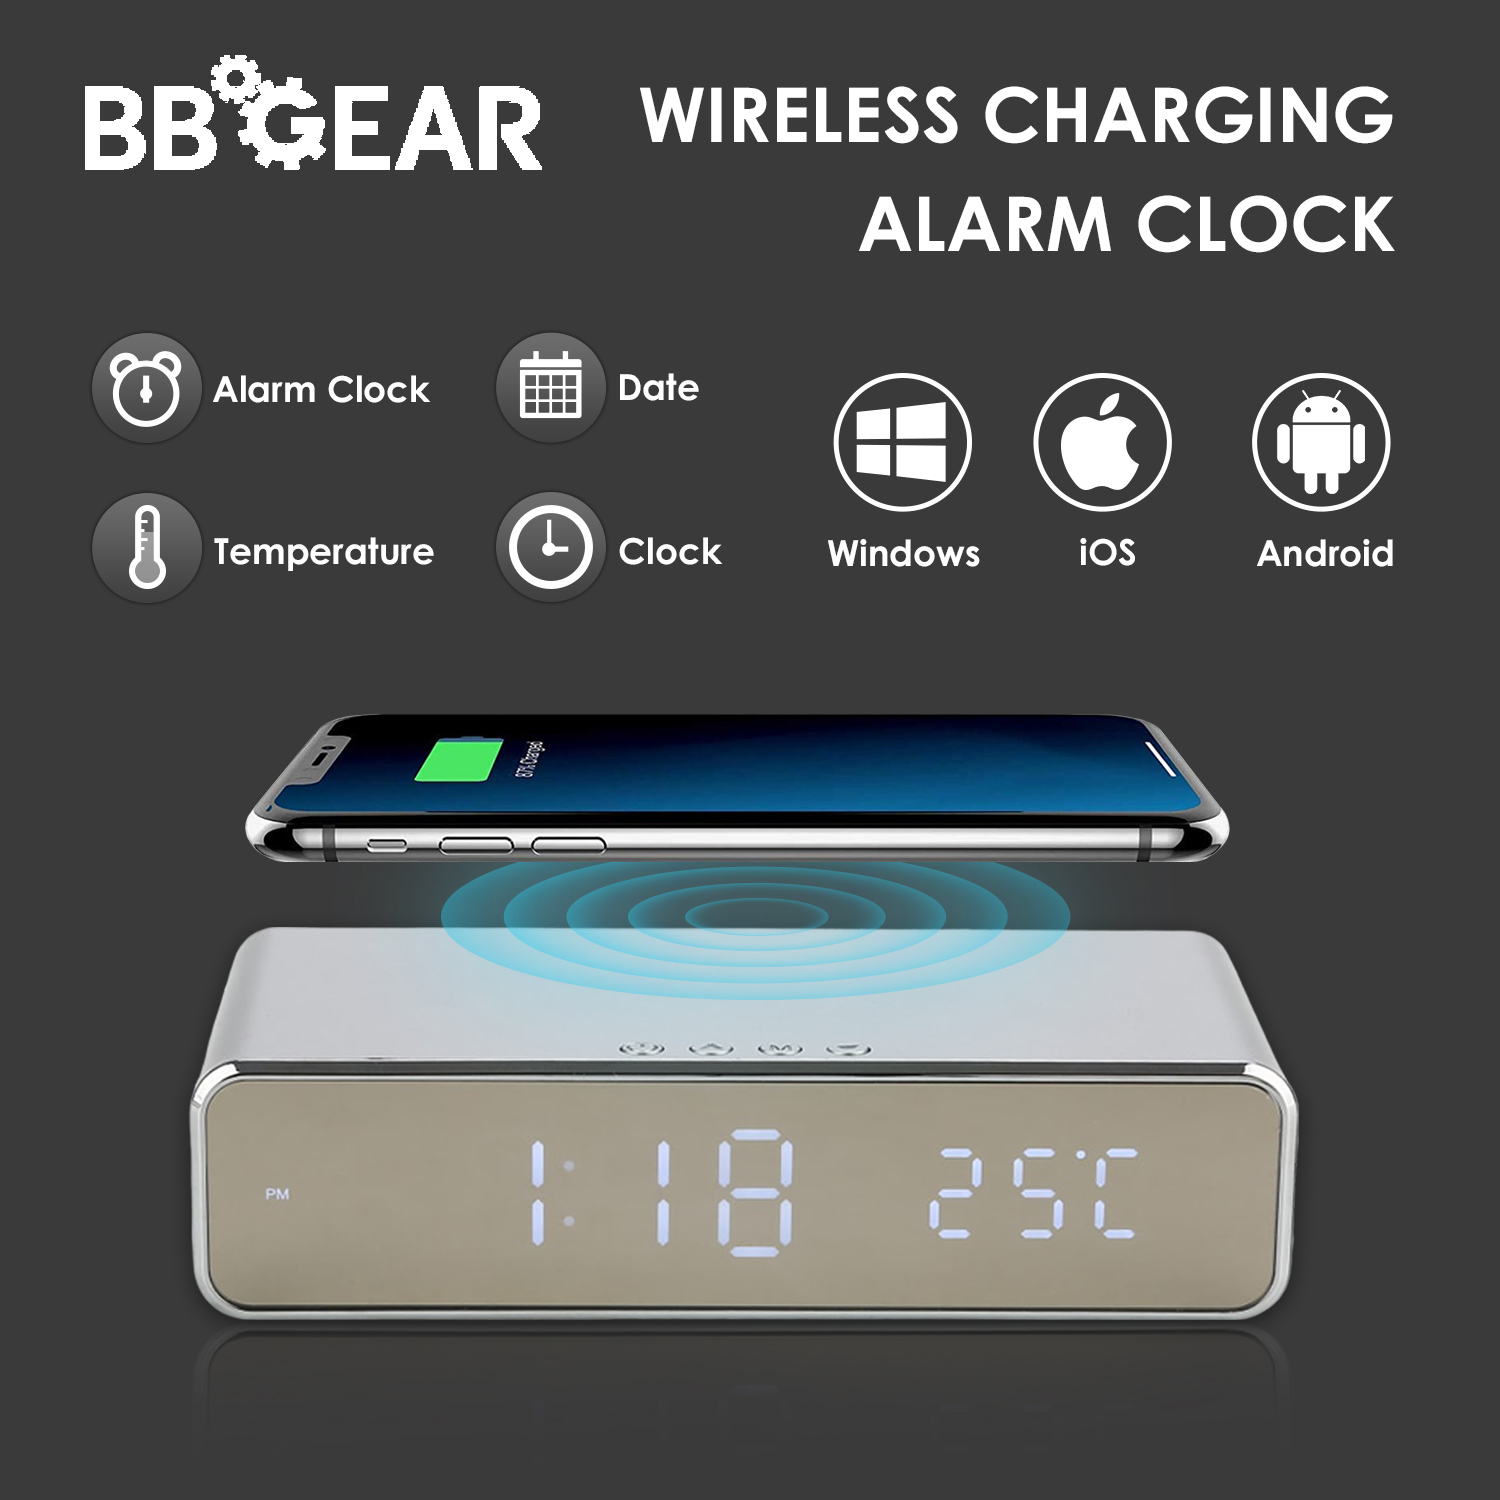 Multifunction Wireless Phone Charger With LED Alarm Clock Modern Qi Charging Electronic Desktop Digital Alarm Clock Date Temp